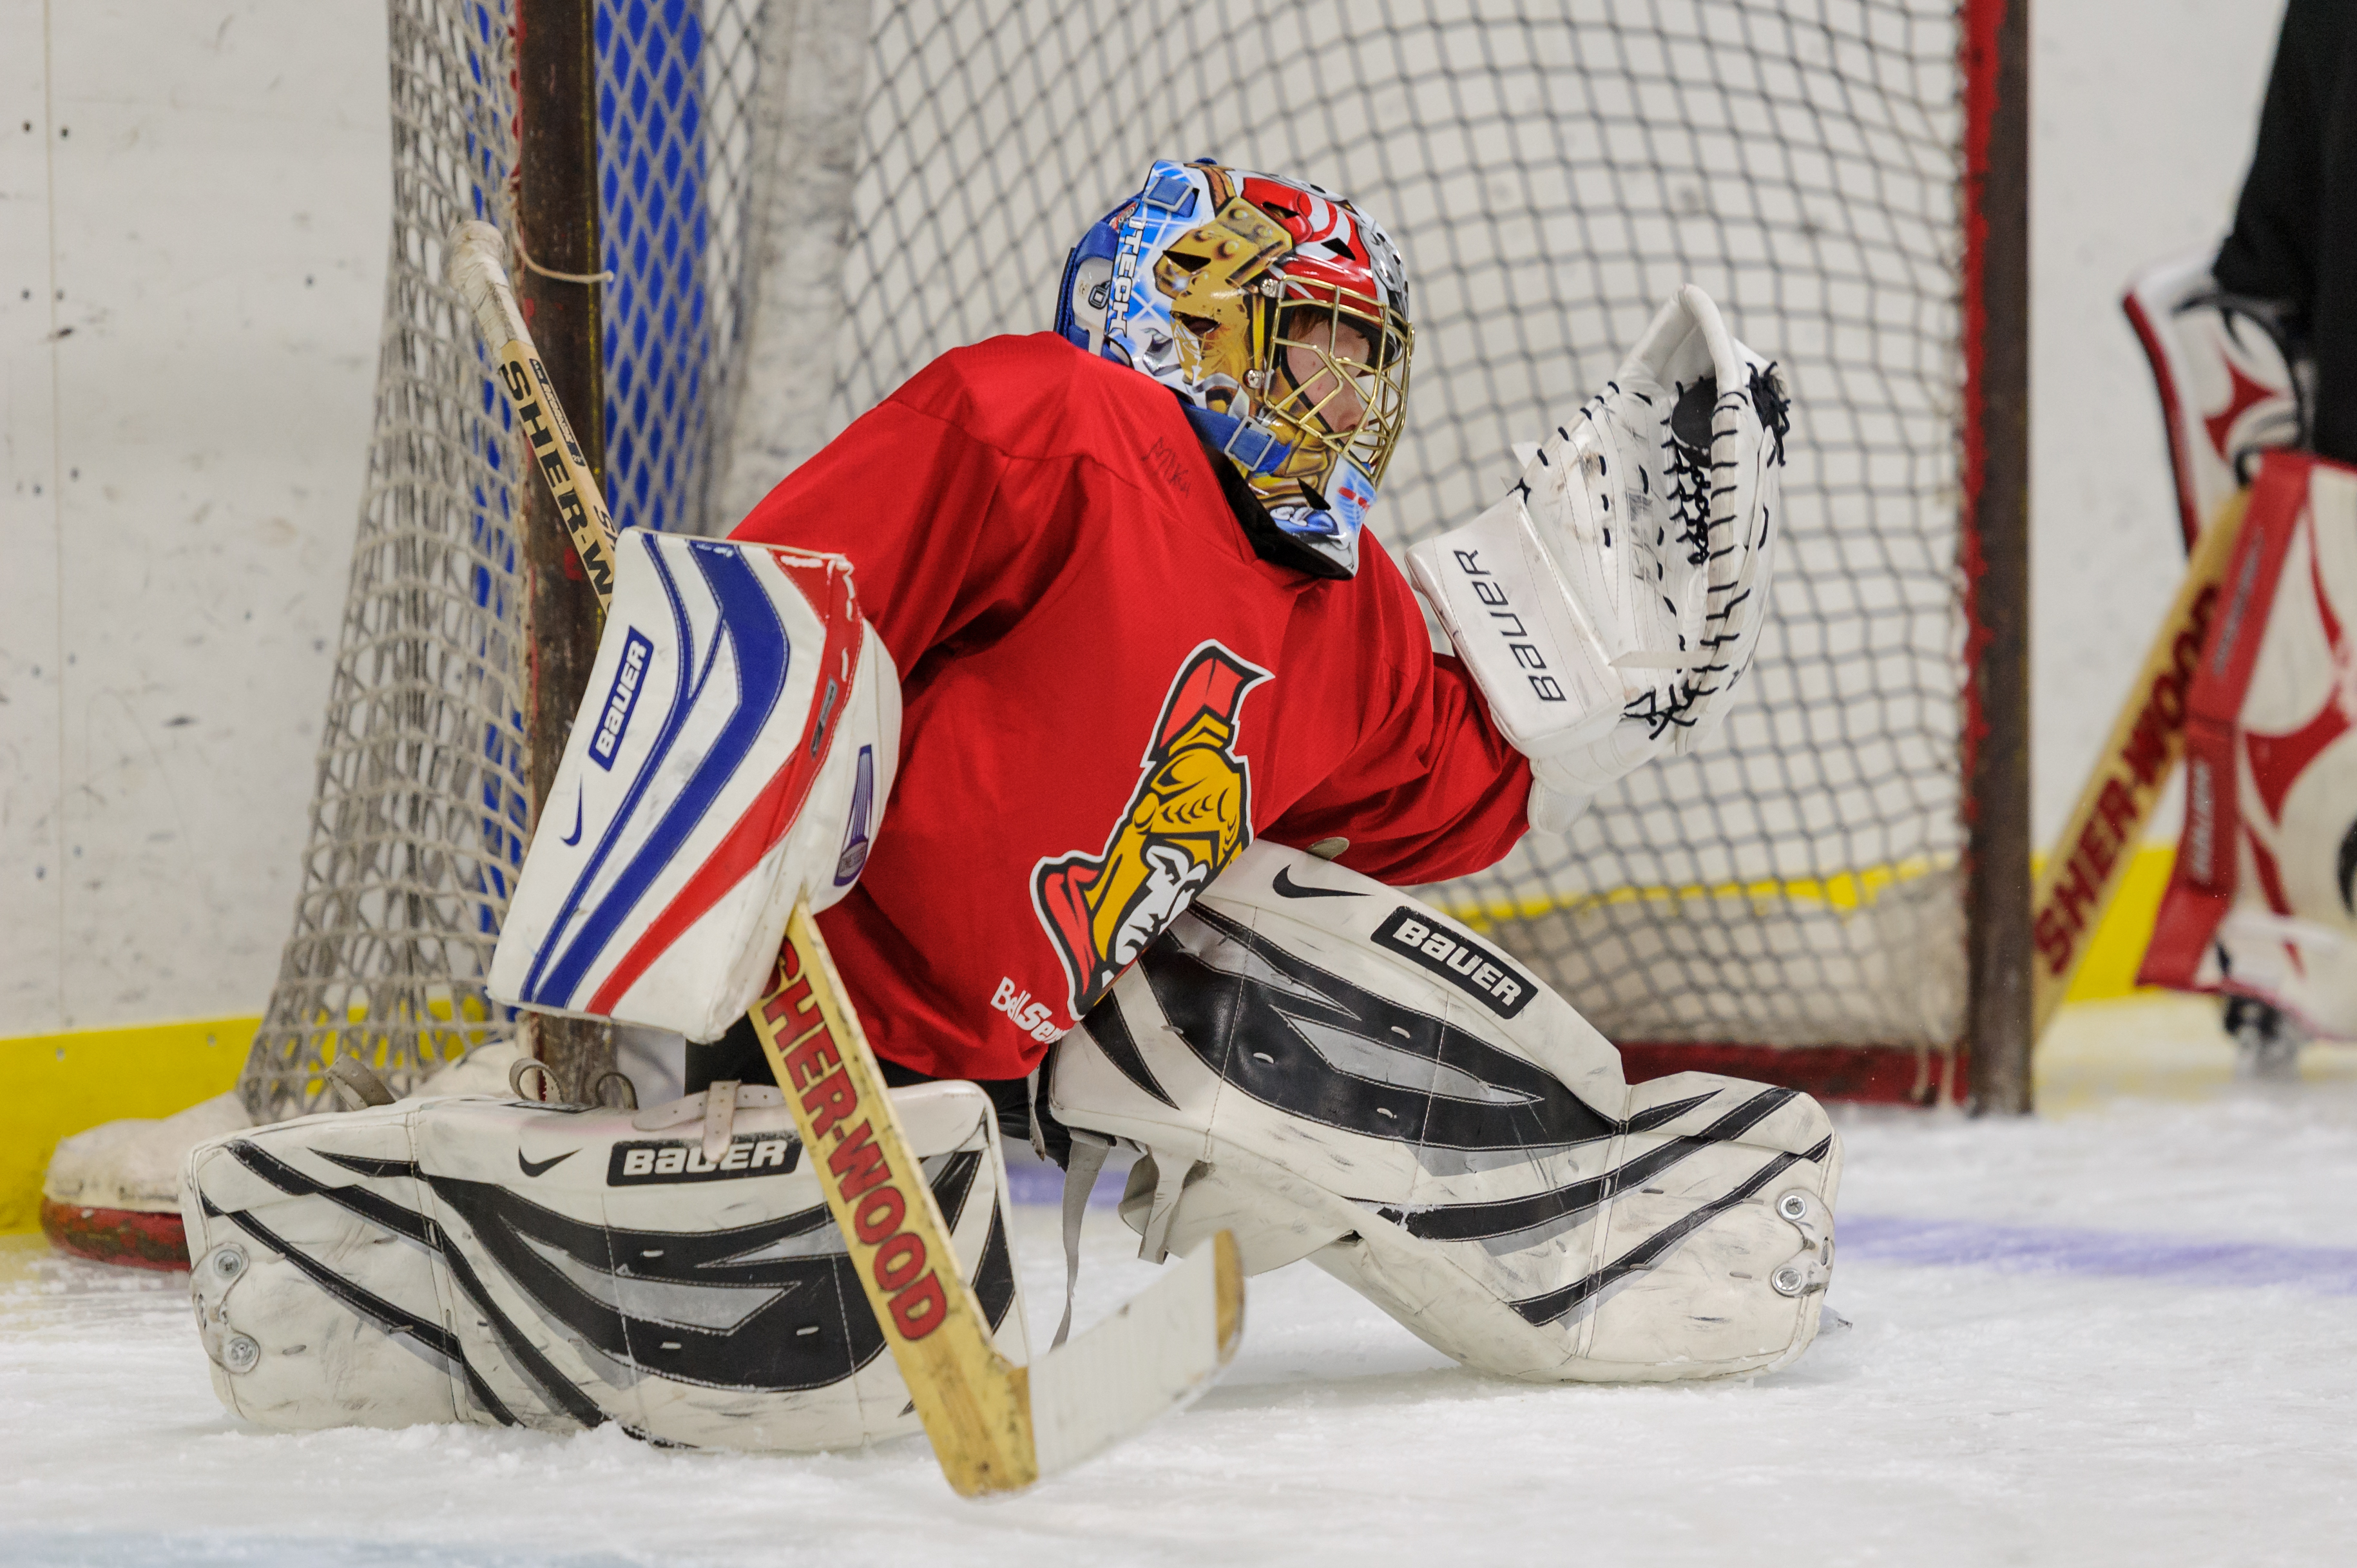 Schedule Goalie Training Gaahockey Elite Ottawa Goalie Training